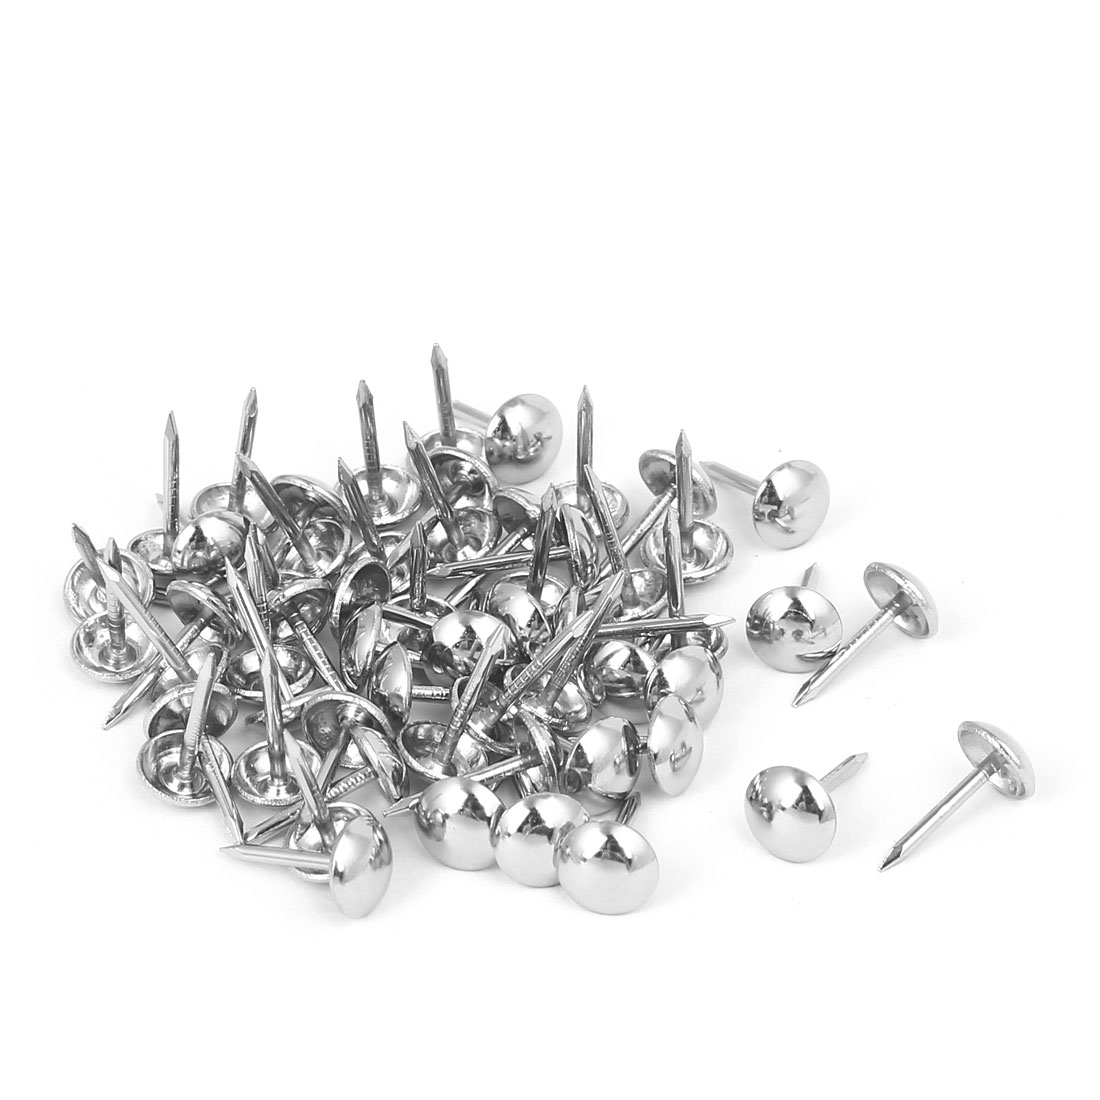 8mm Head Dia 15mm Height Upholstery Nail Thumb Tack Push Pin Silver Tone 80pcs